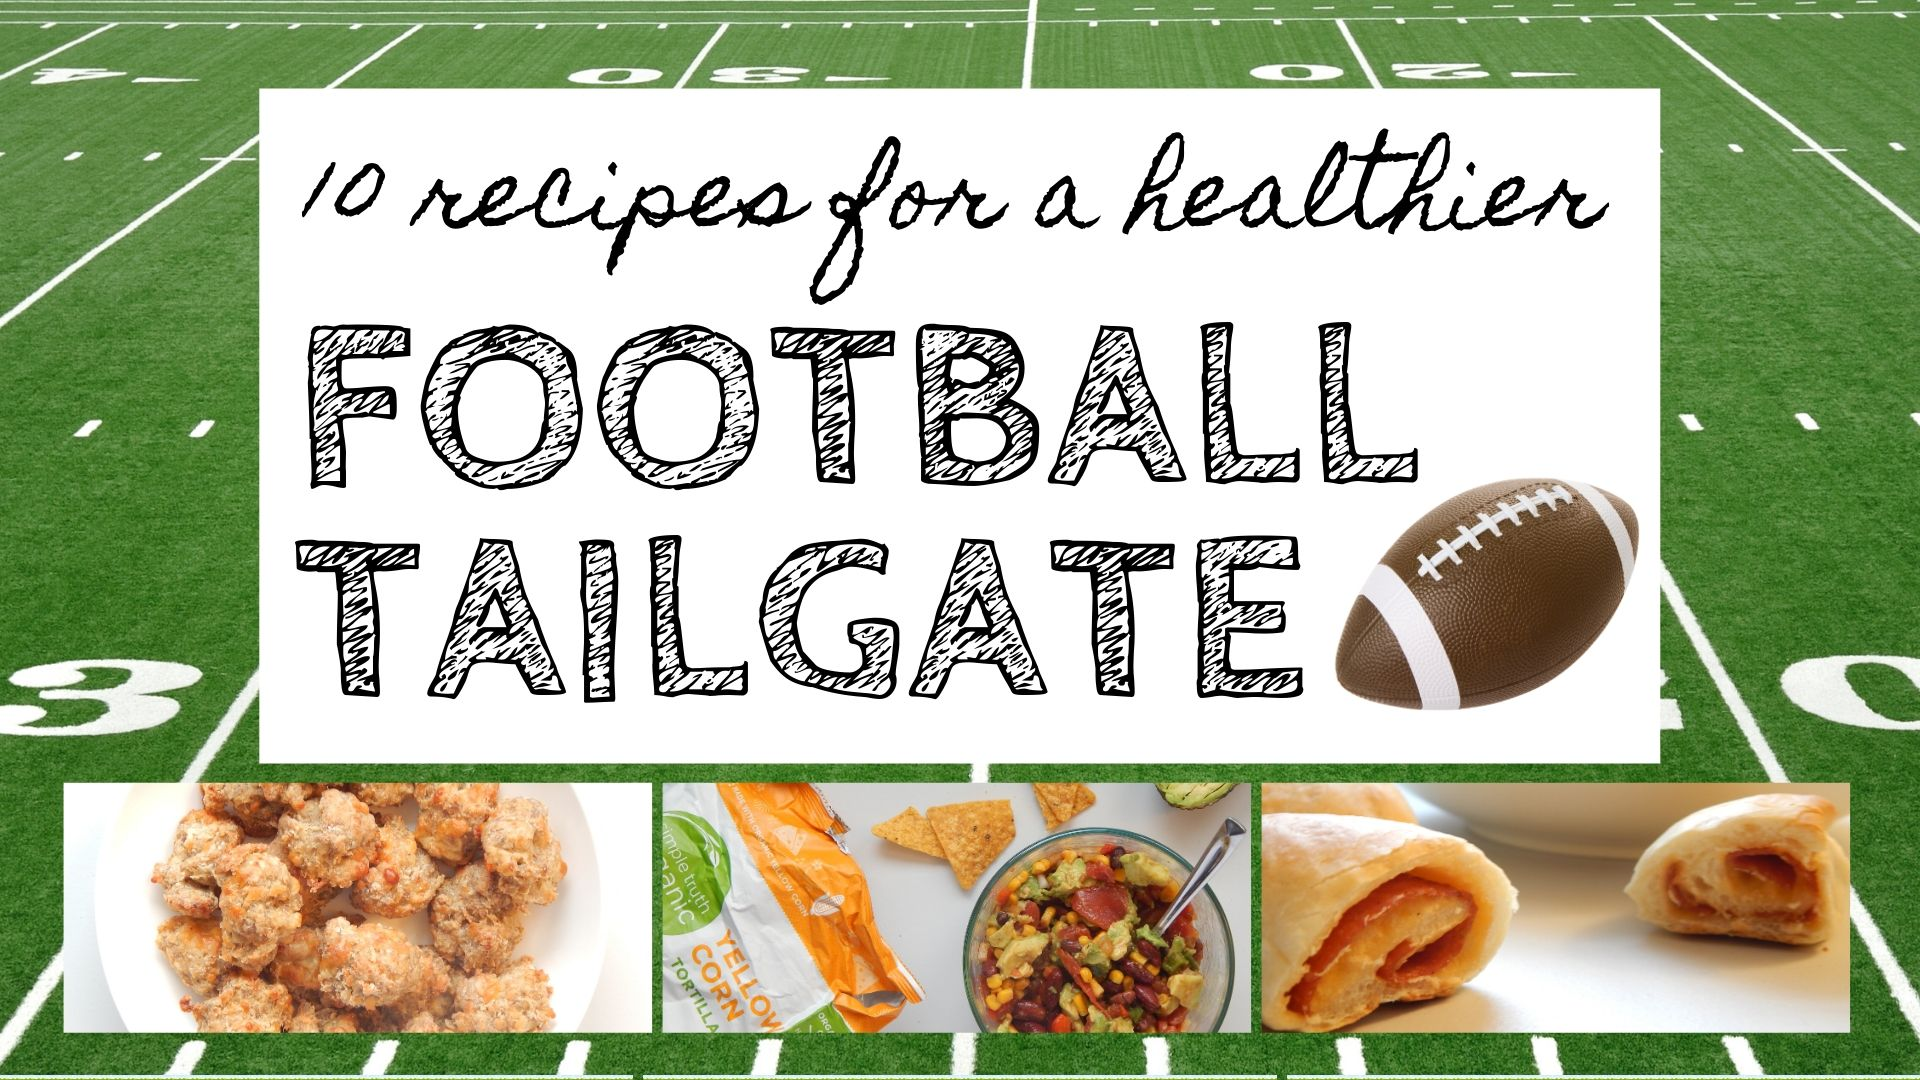 fourganic sisters healthy tailgate food